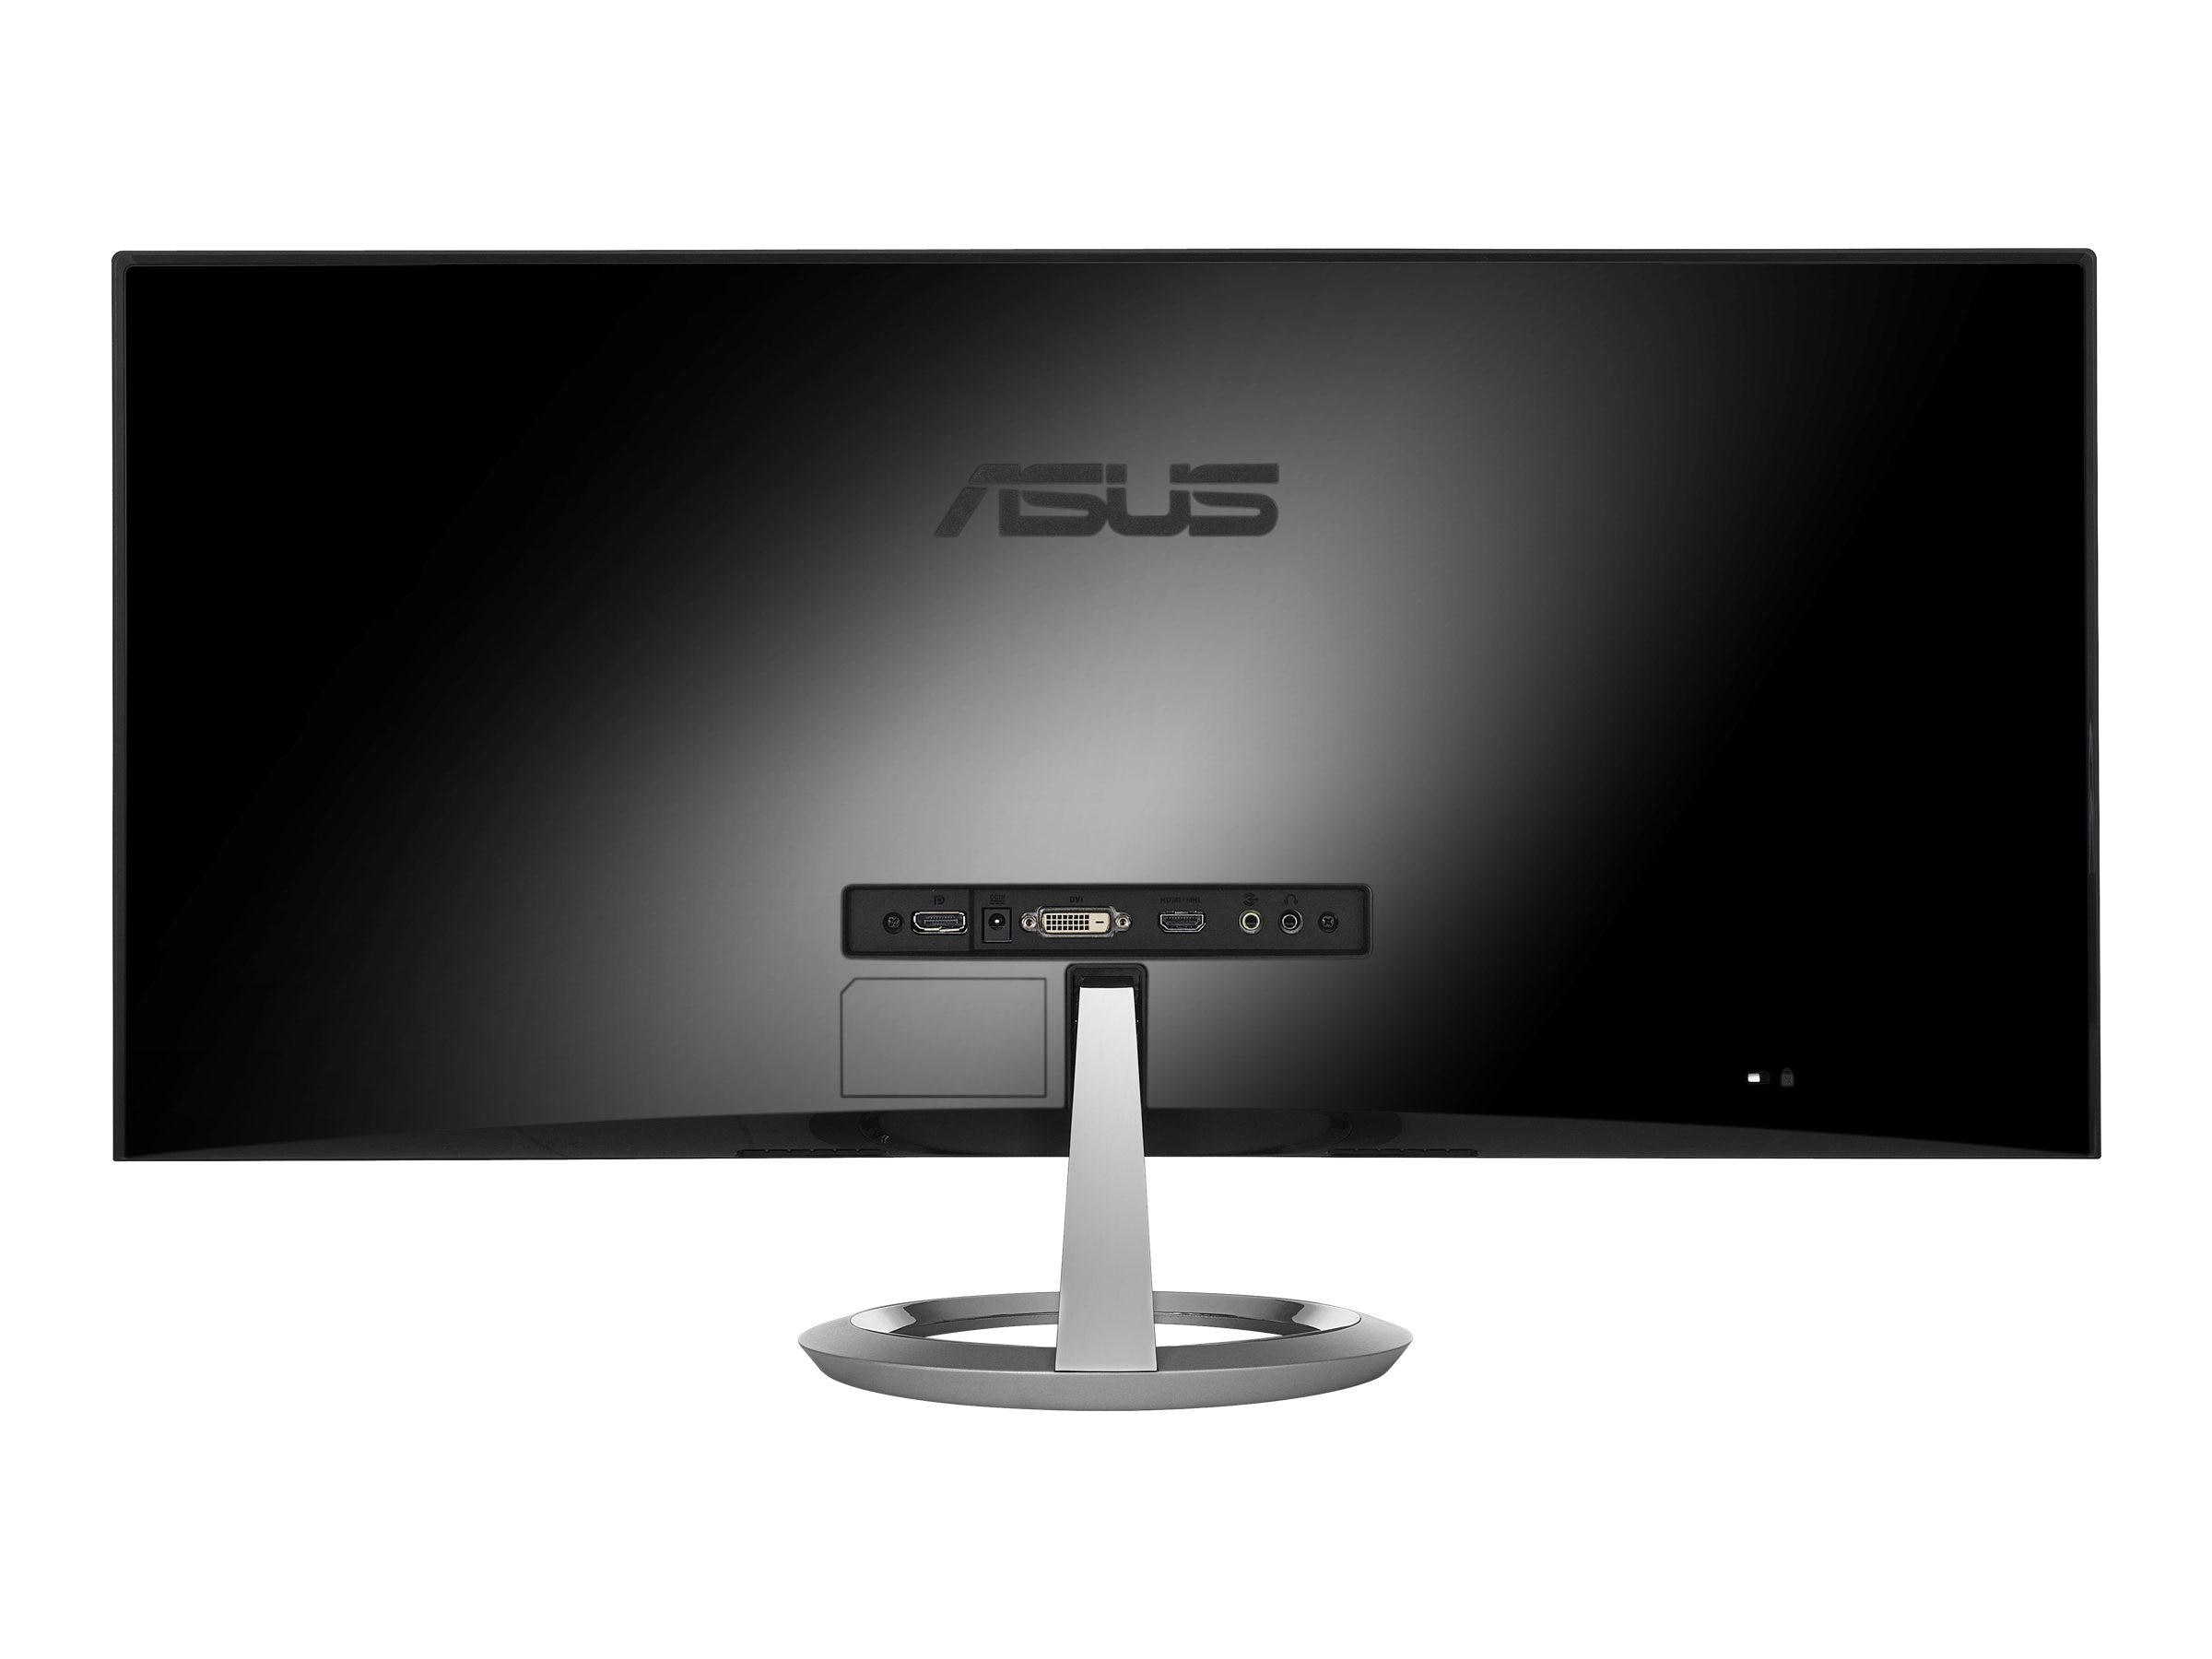 Asus 29 MX299Q LED-LCD Ultrawide Frameless Monitor, Black, MX299Q